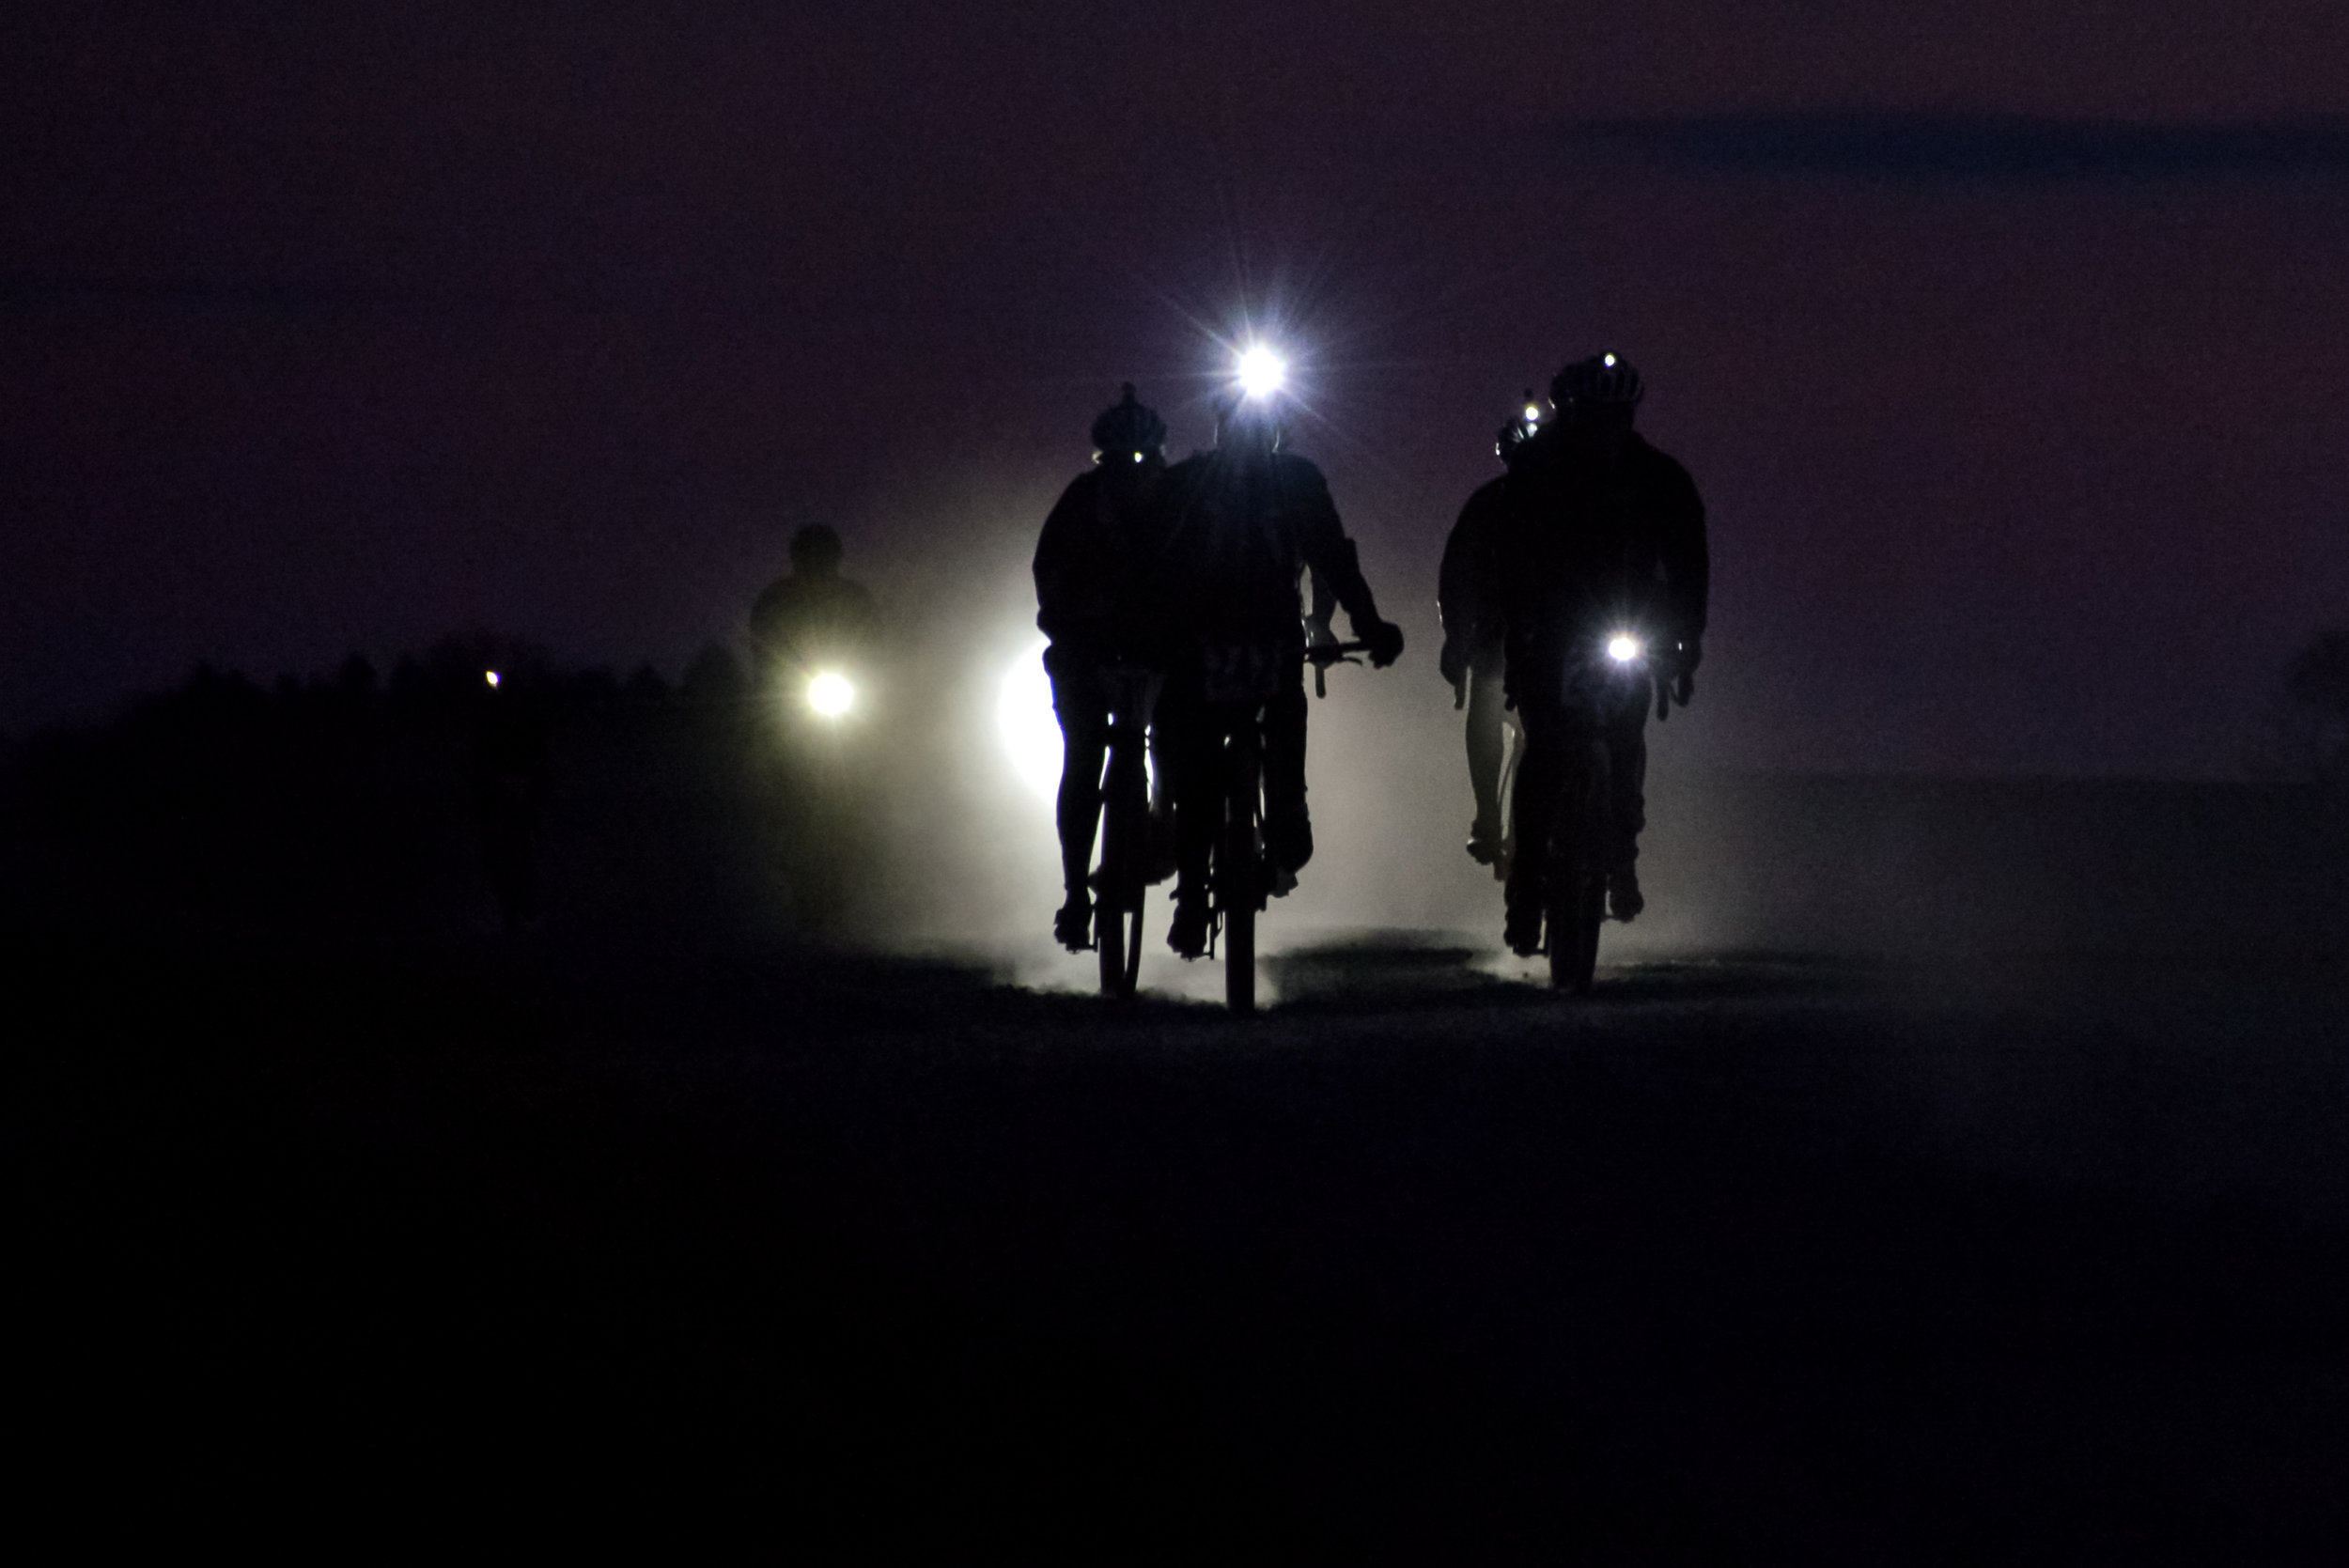 Riding gravel at night can be a wonderfully focused experience. Sharing the dark miles makes them a little brighter. Photo by Jon Duke.